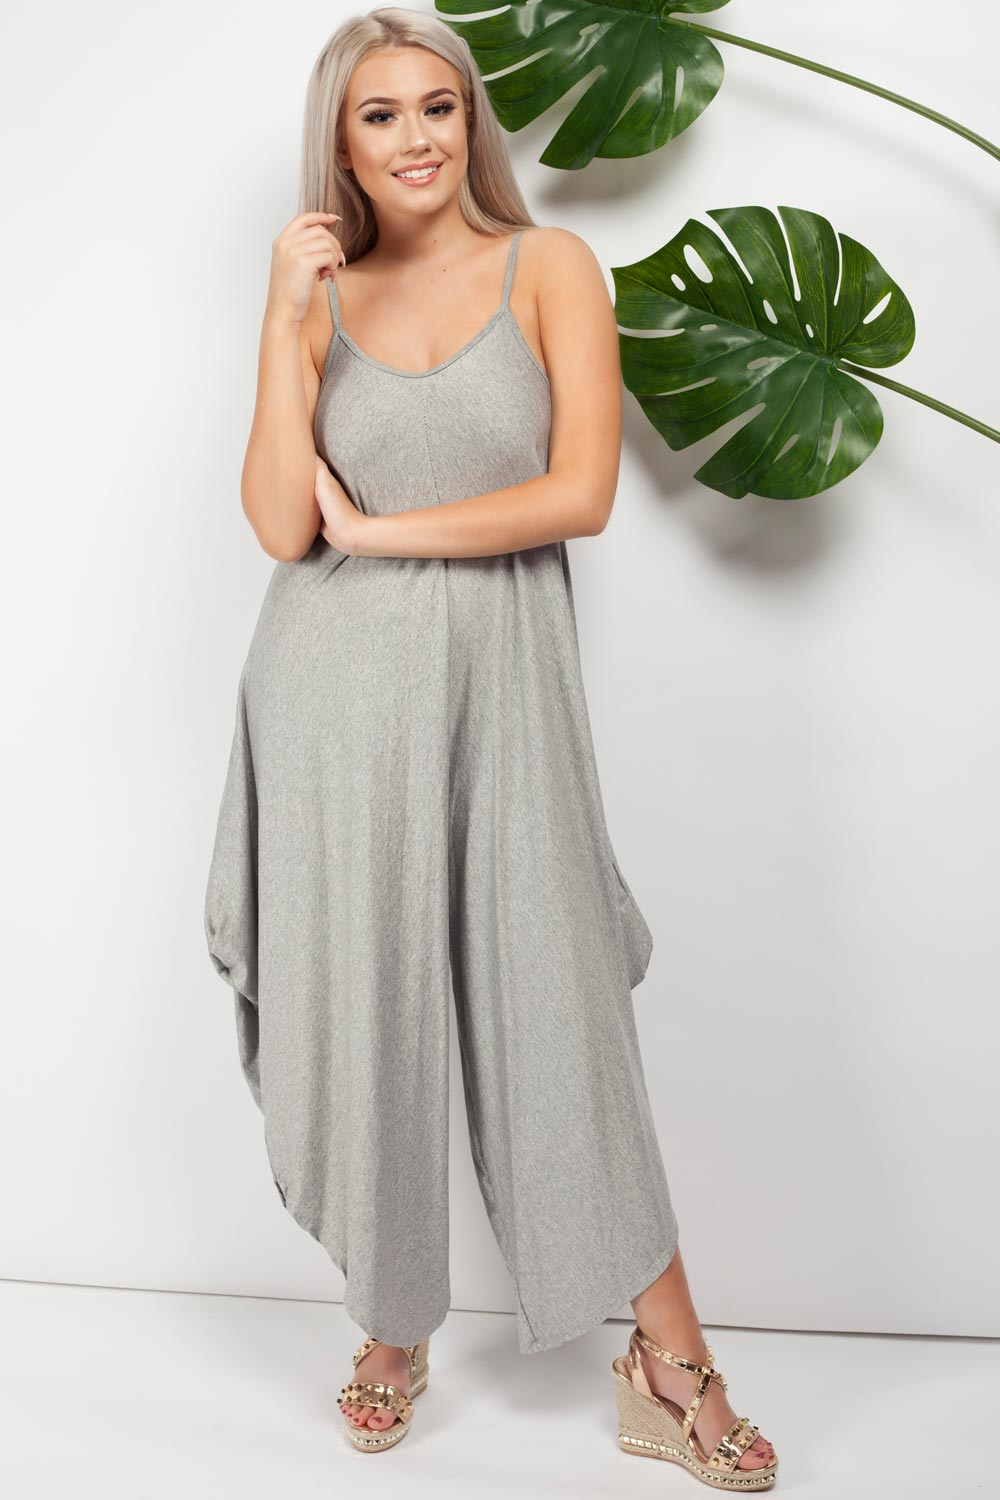 culotte jumpsuit grey uk